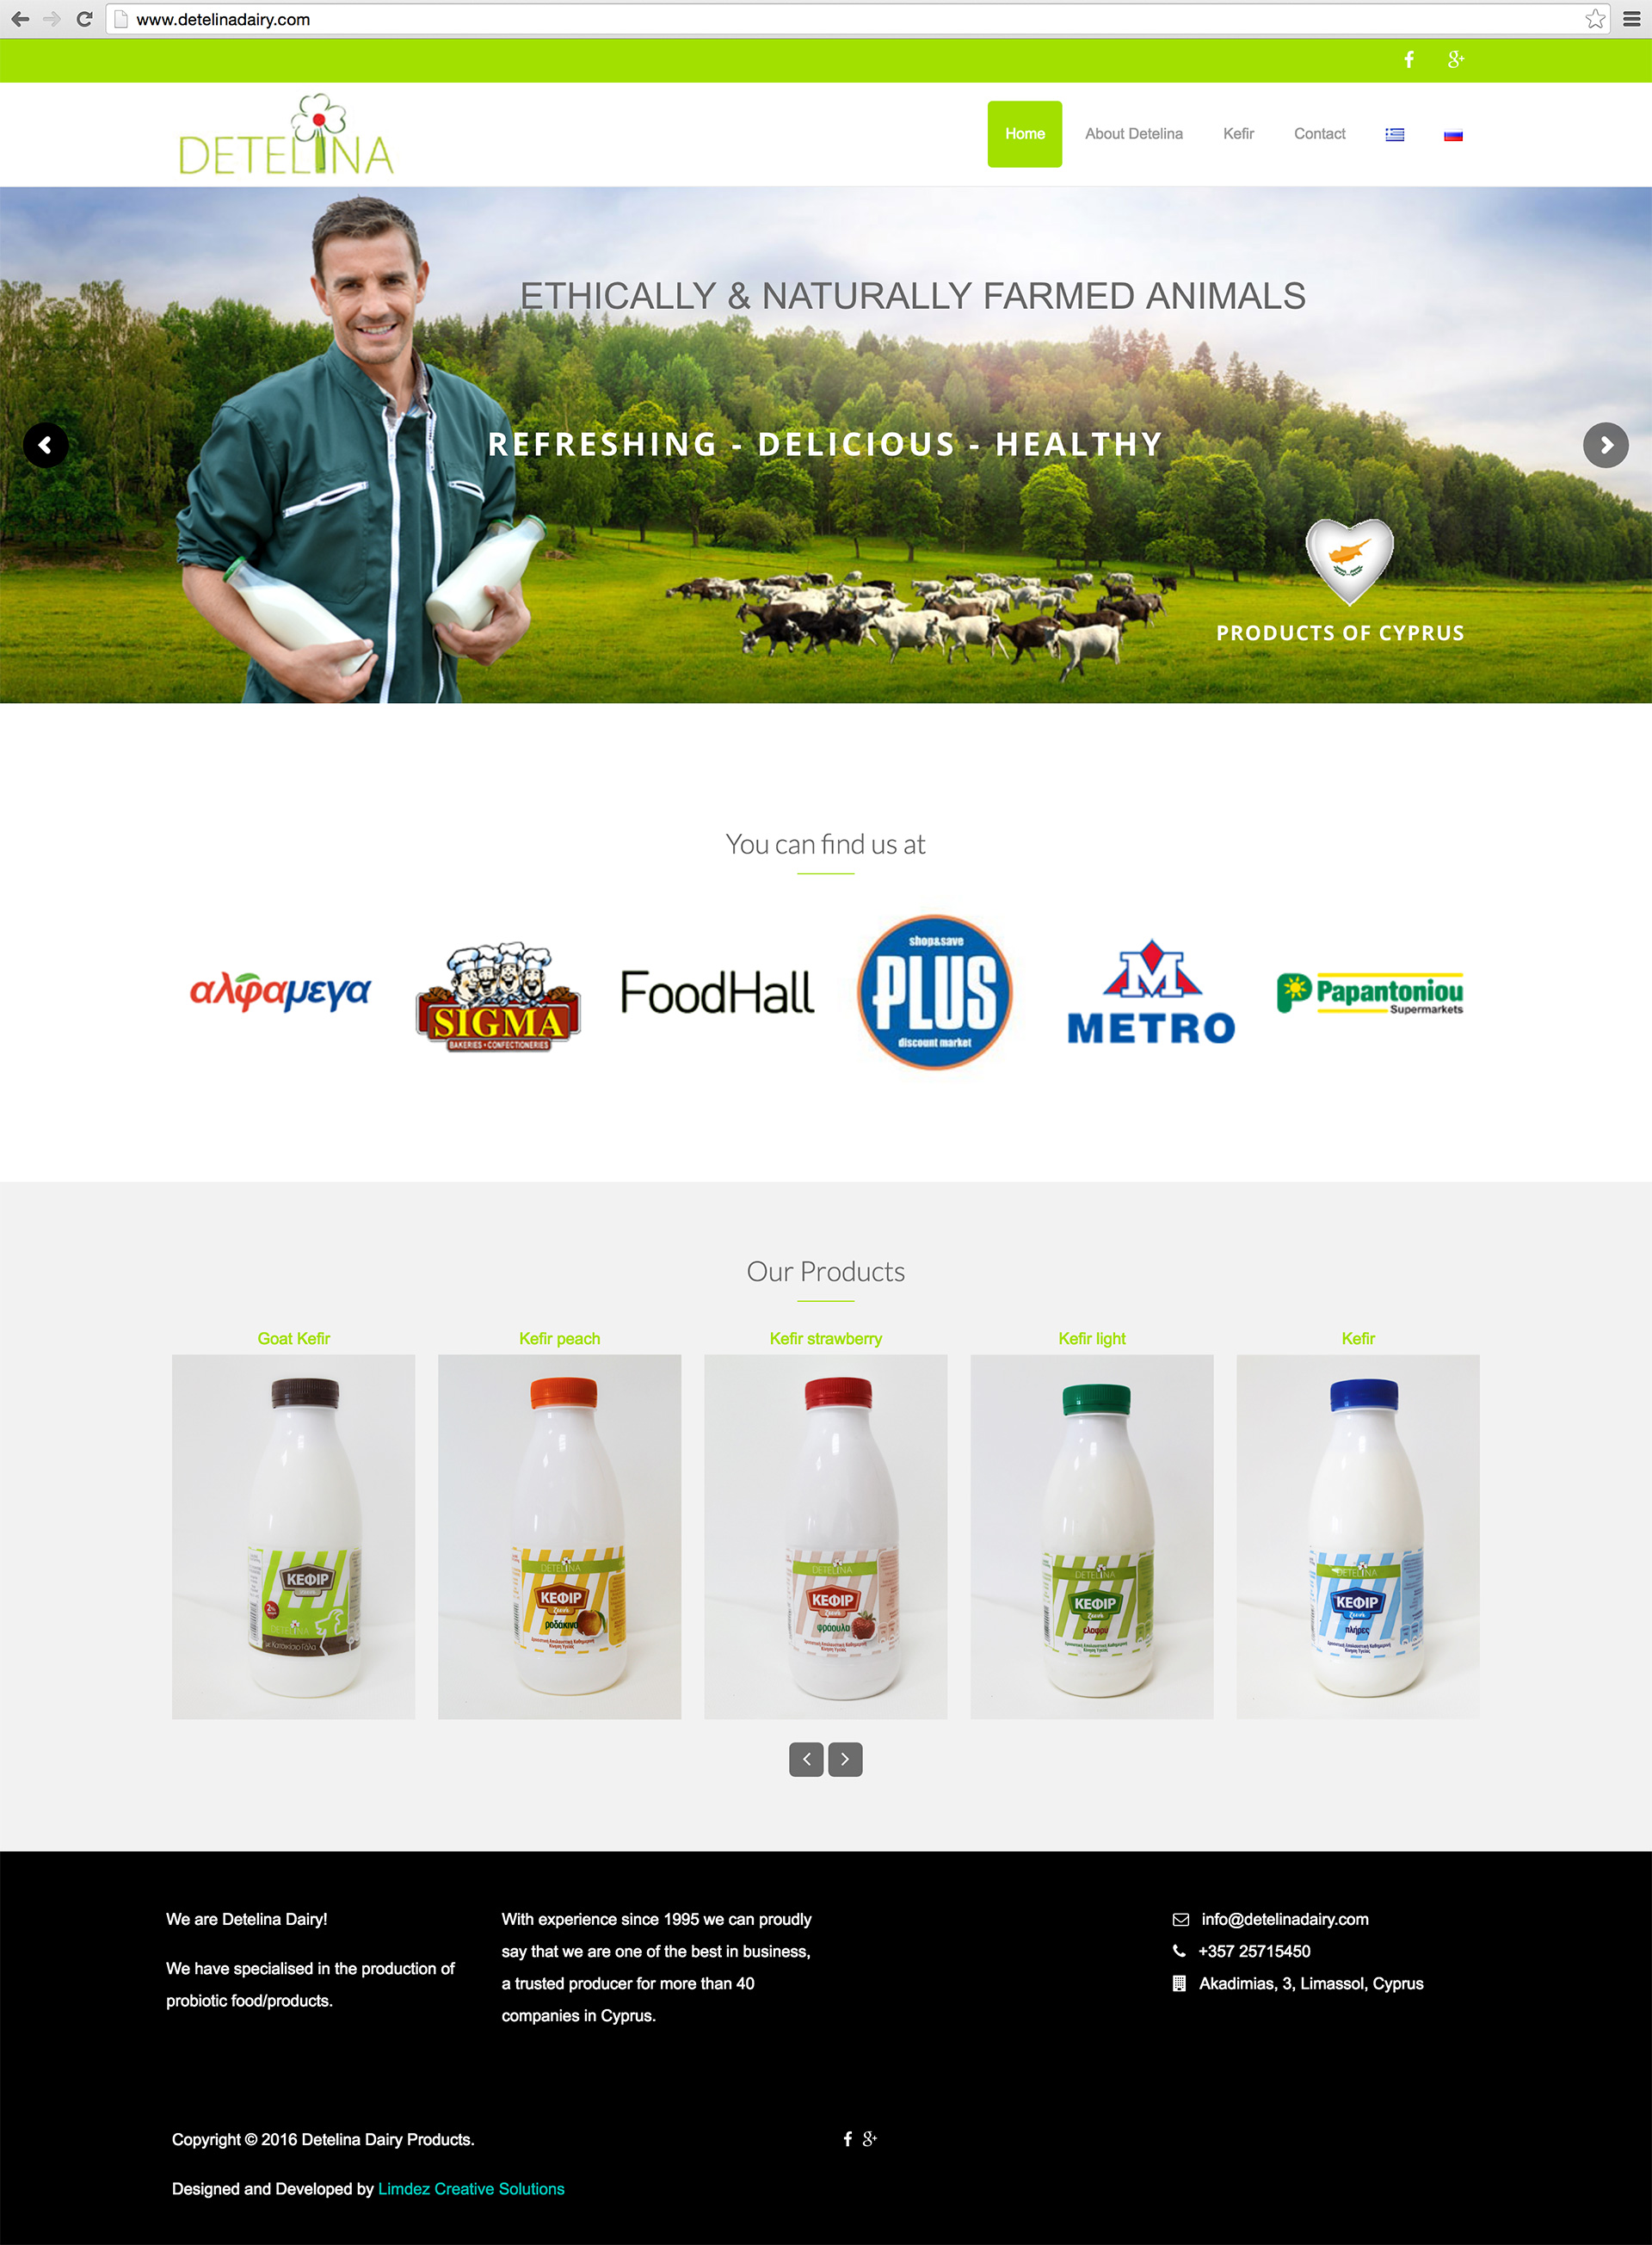 website design detelina dairy cyprus